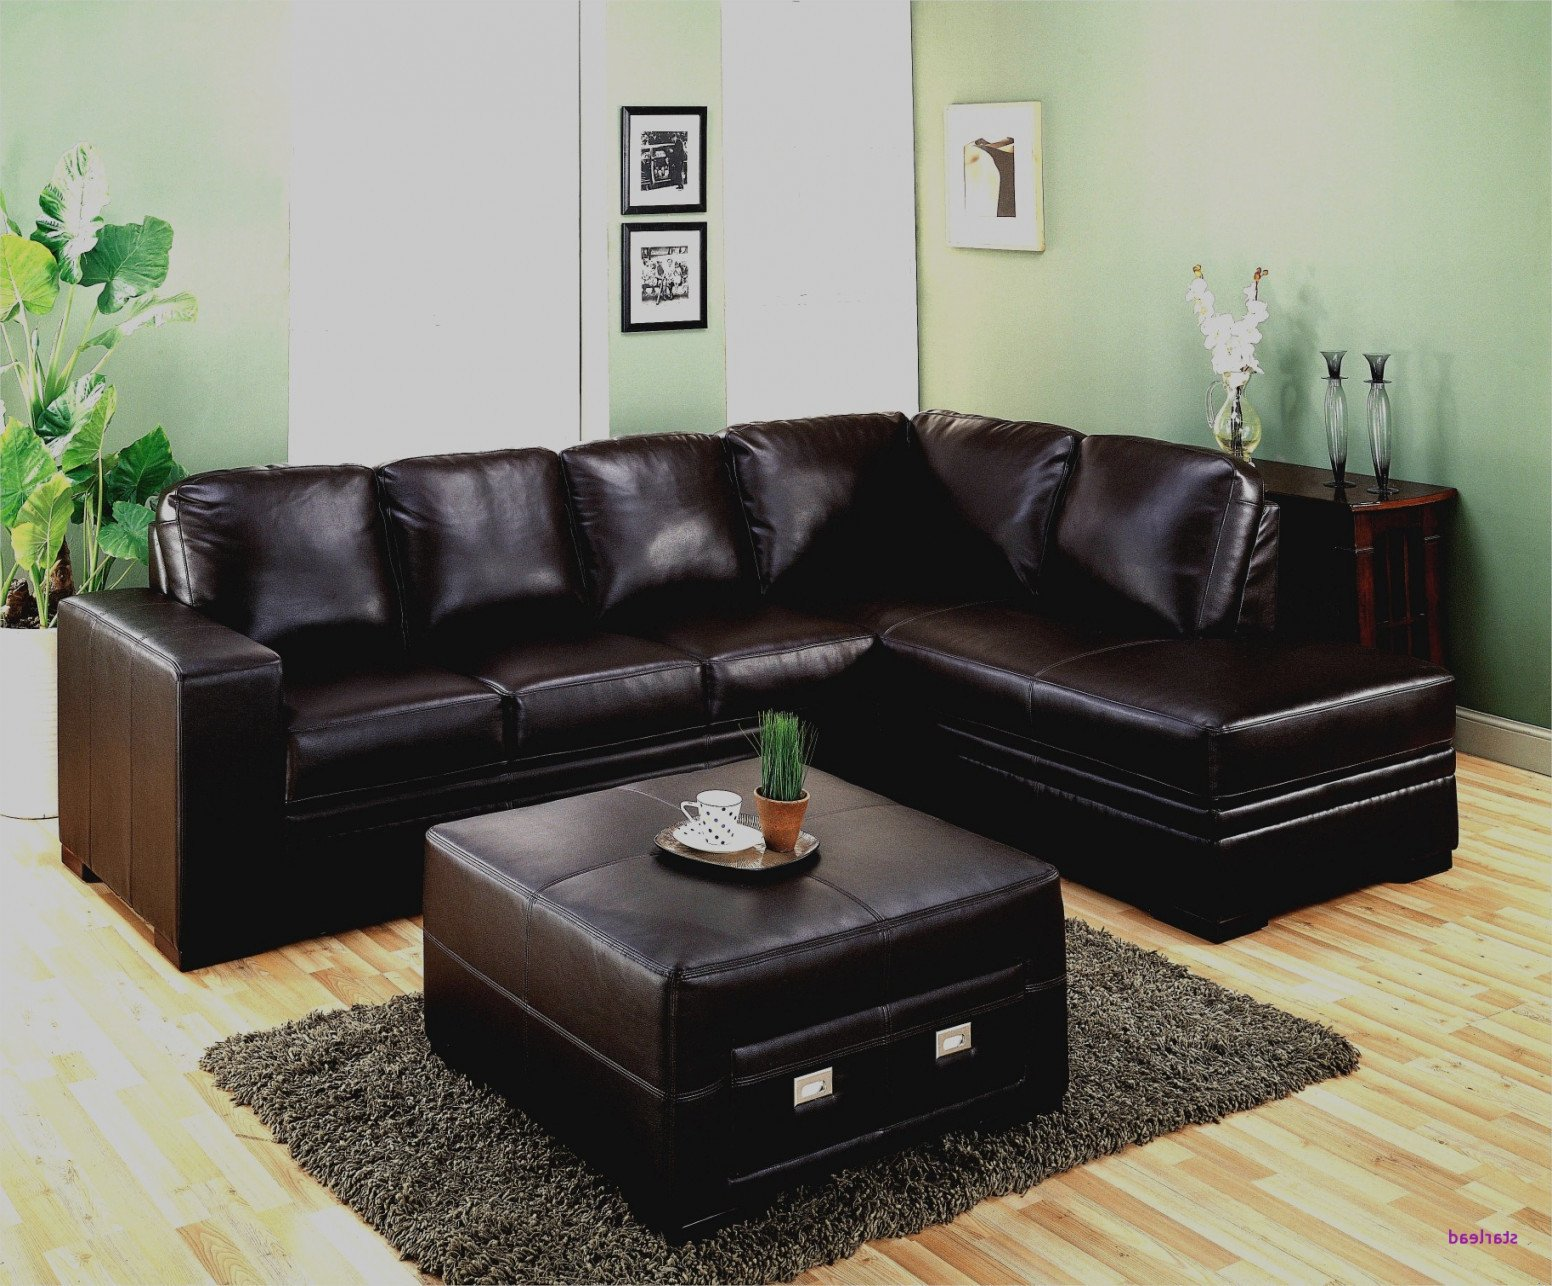 Black Leather Bedroom Set Best Of 30 Best Couches for Dark Hardwood Floors